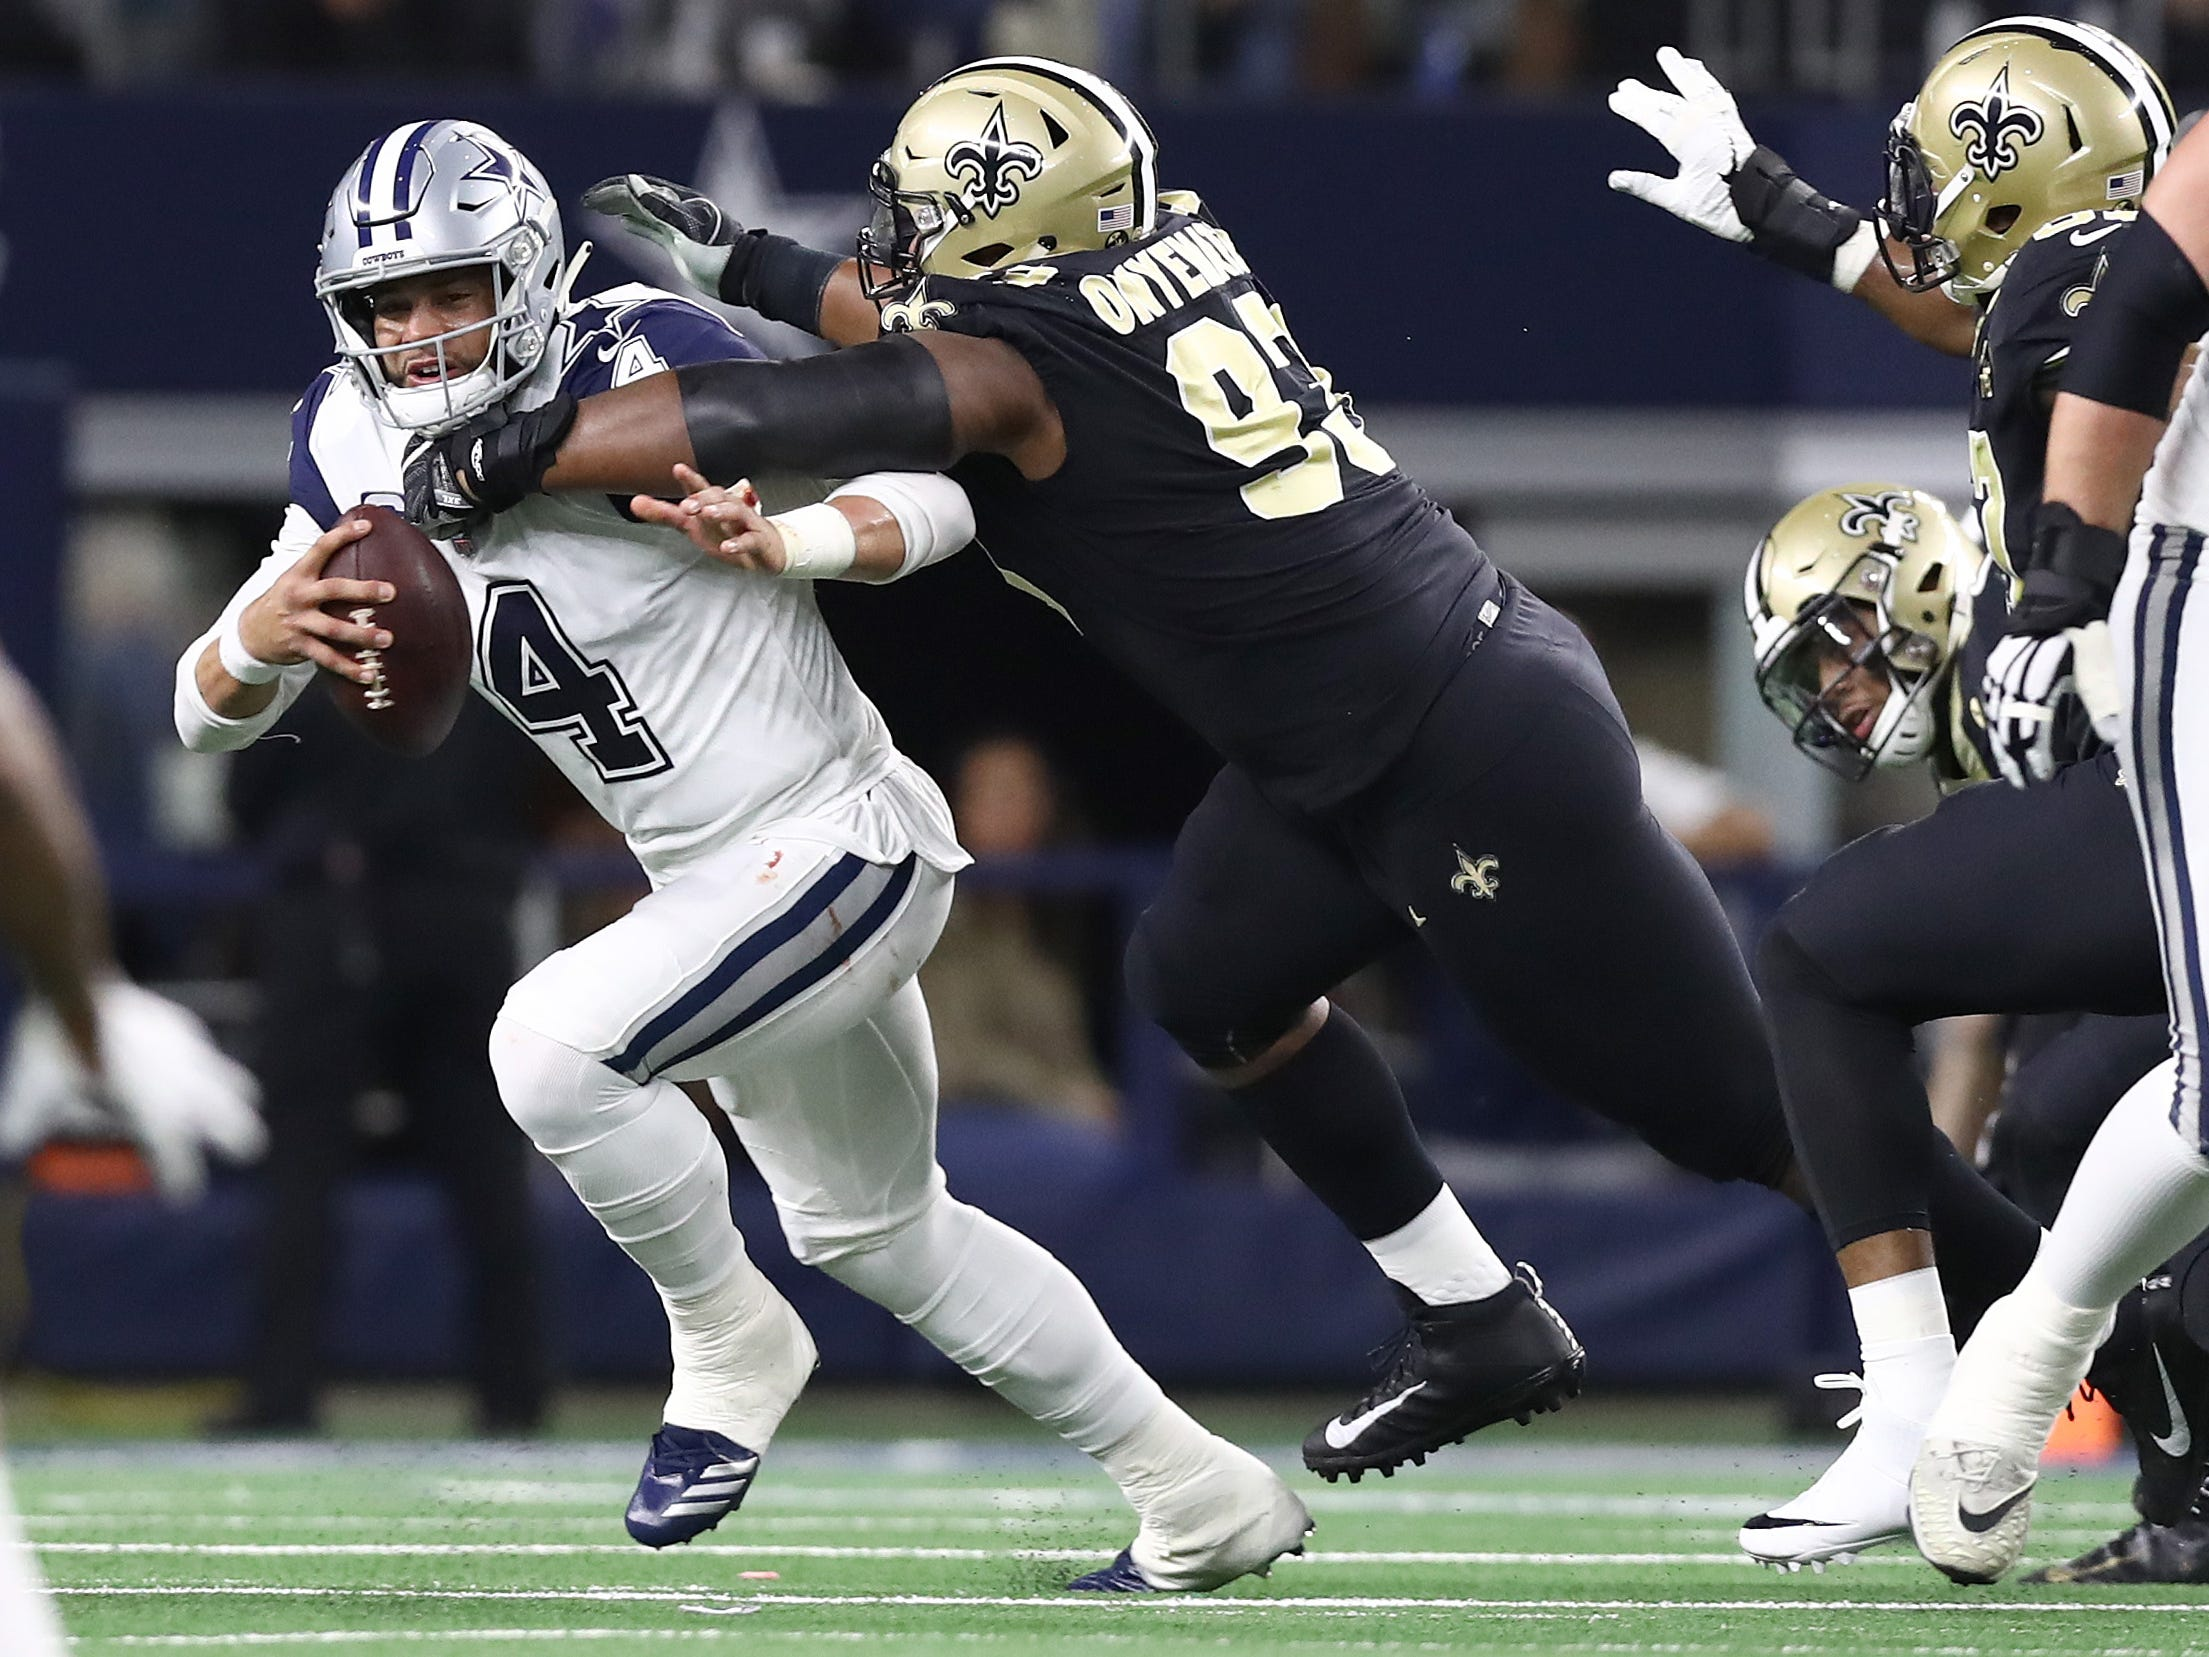 Dallas Cowboys quarterback Dak Prescott is sacked in the first quarter by New Orleans Saints defensive tackle David Onyemata at AT&T Stadium.